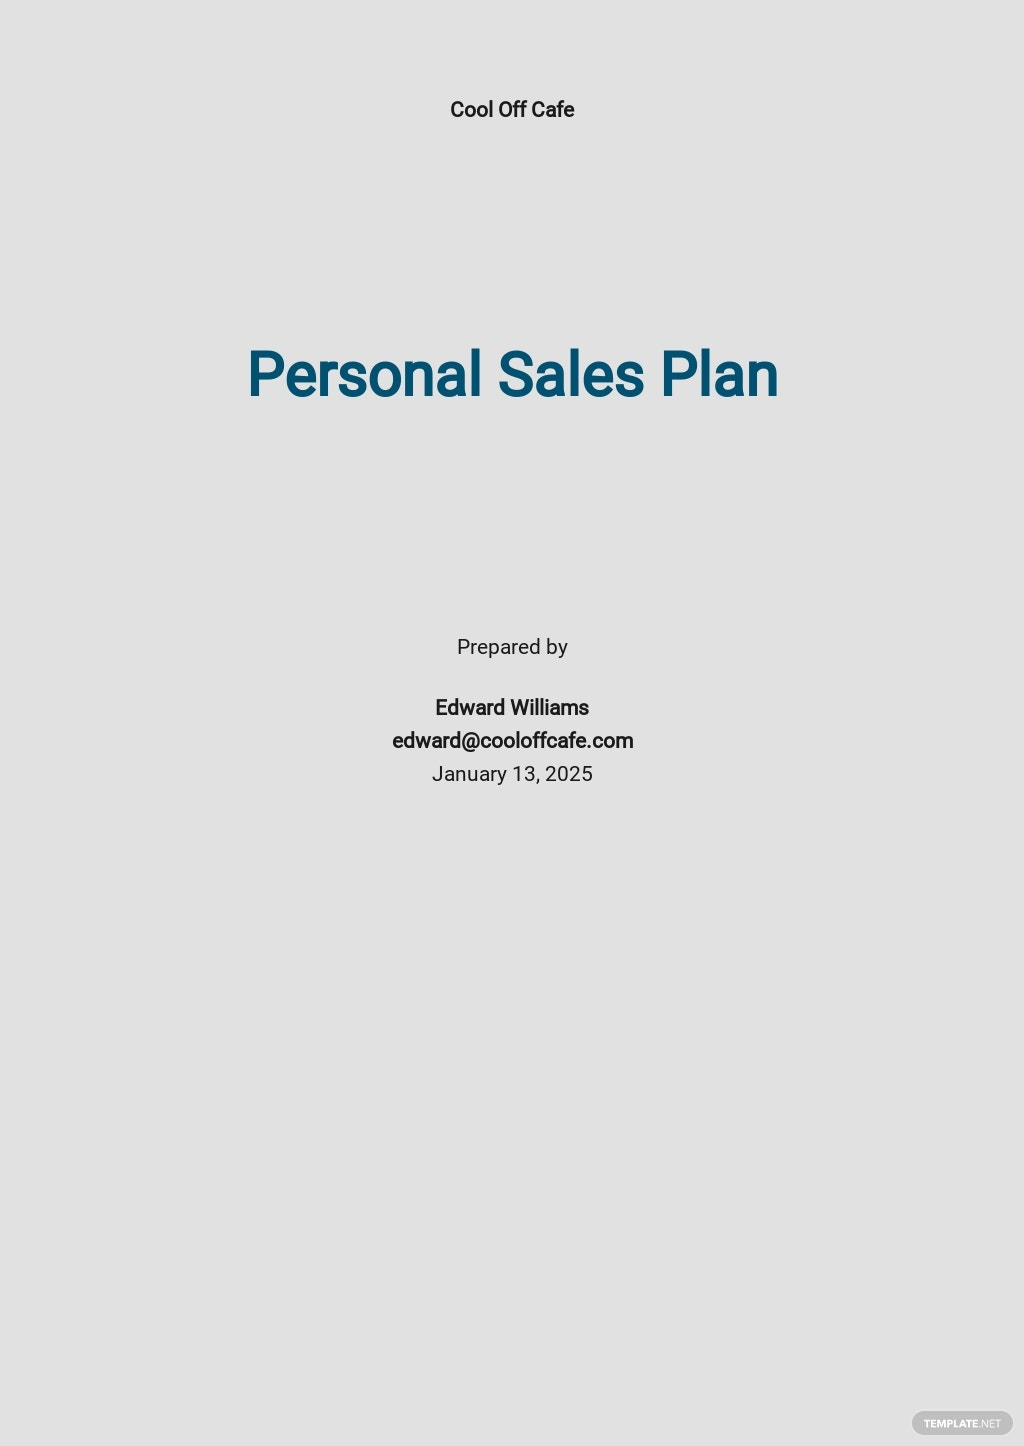 Personal Sales Plan Template